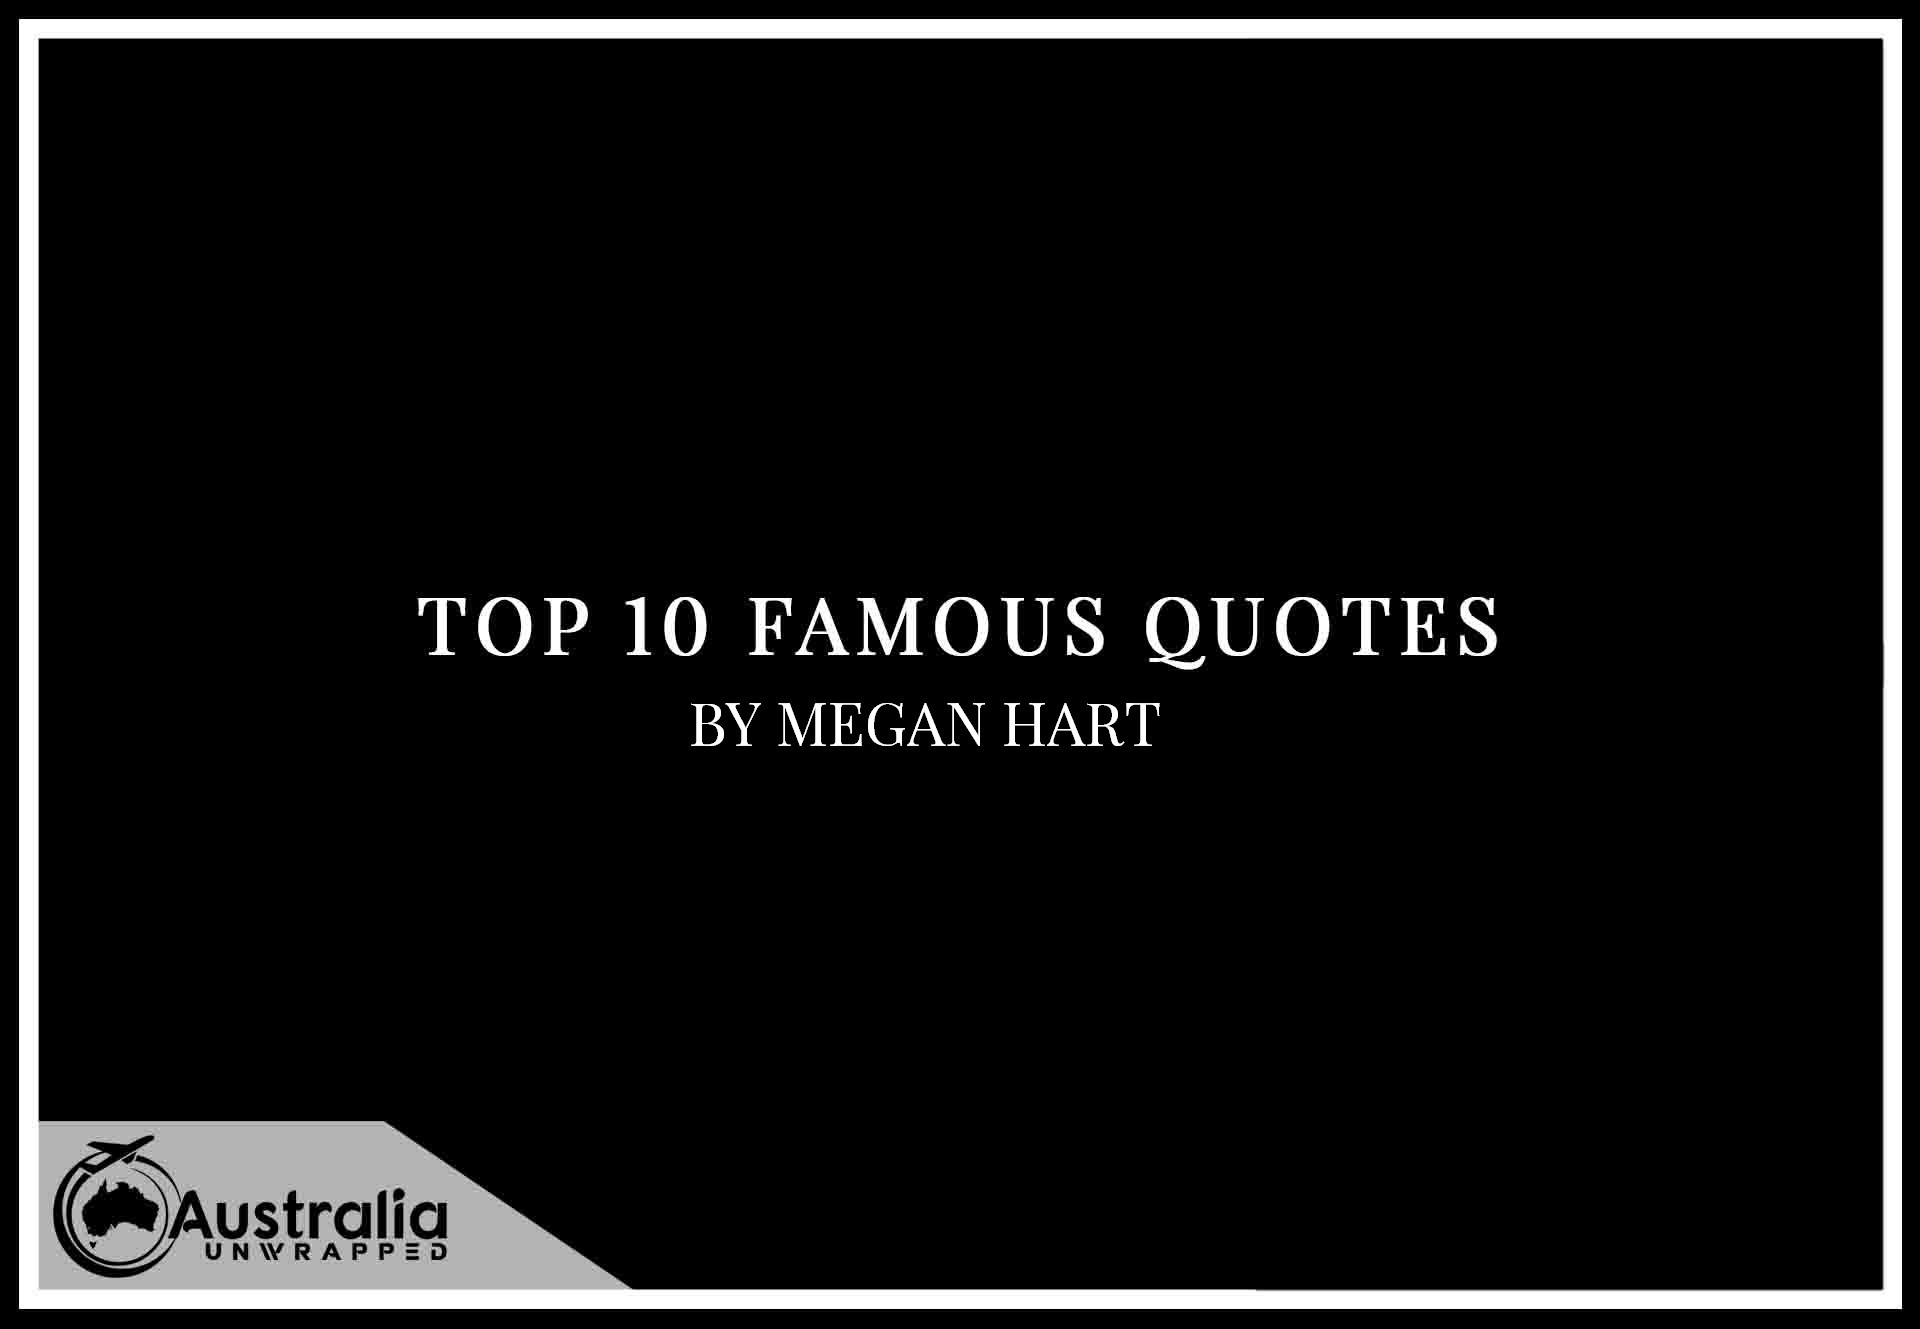 Top 10 Famous Quotes by Author Megan Hart